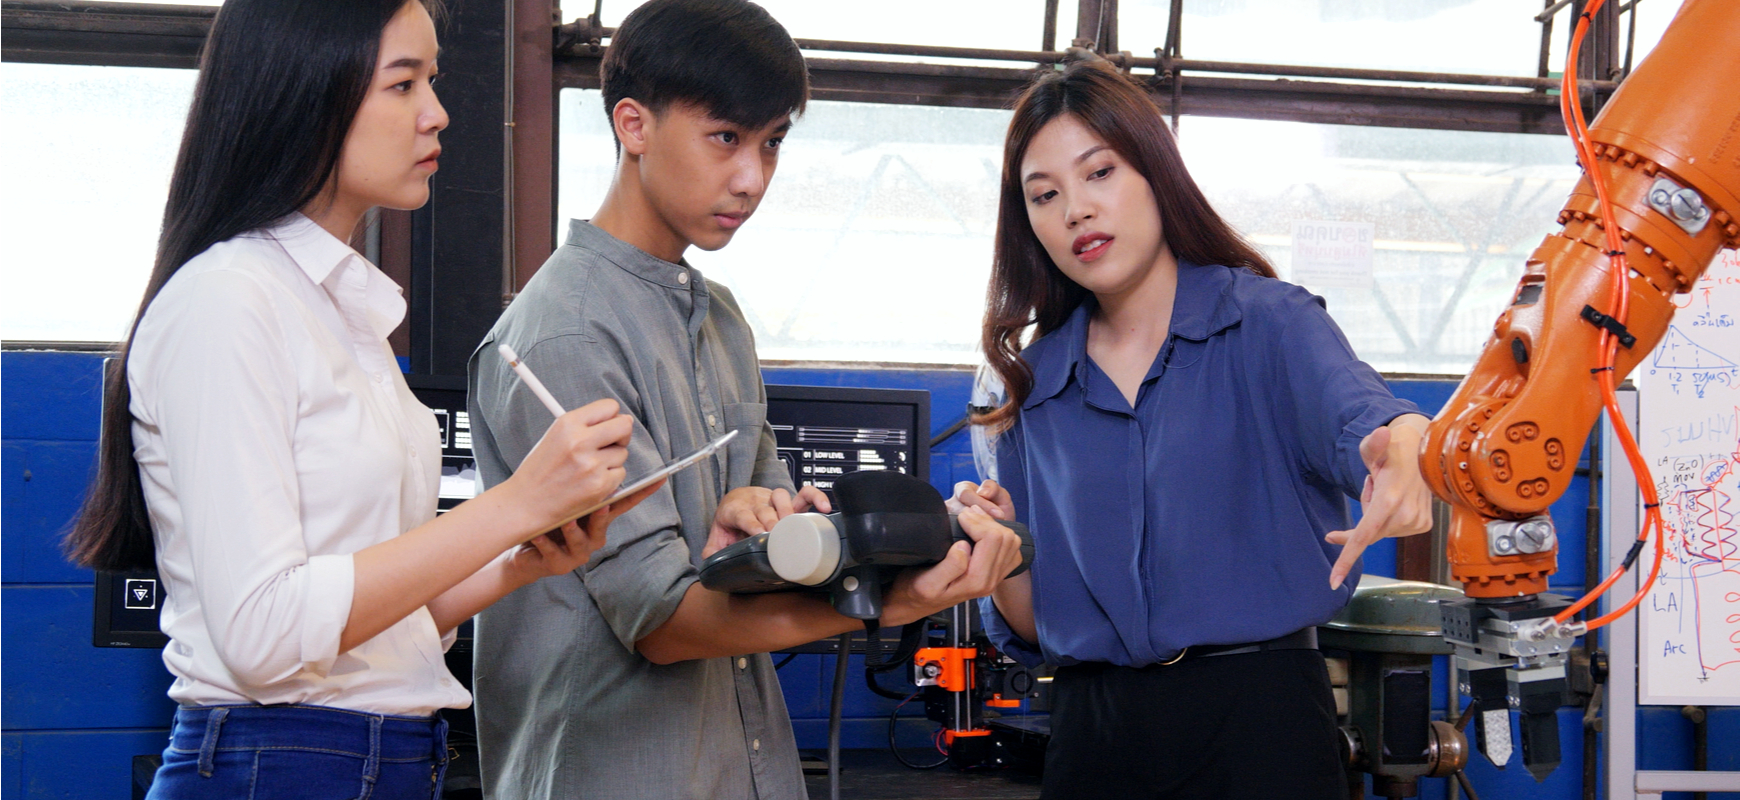 team of engineers discussing modern robotic automation equipment